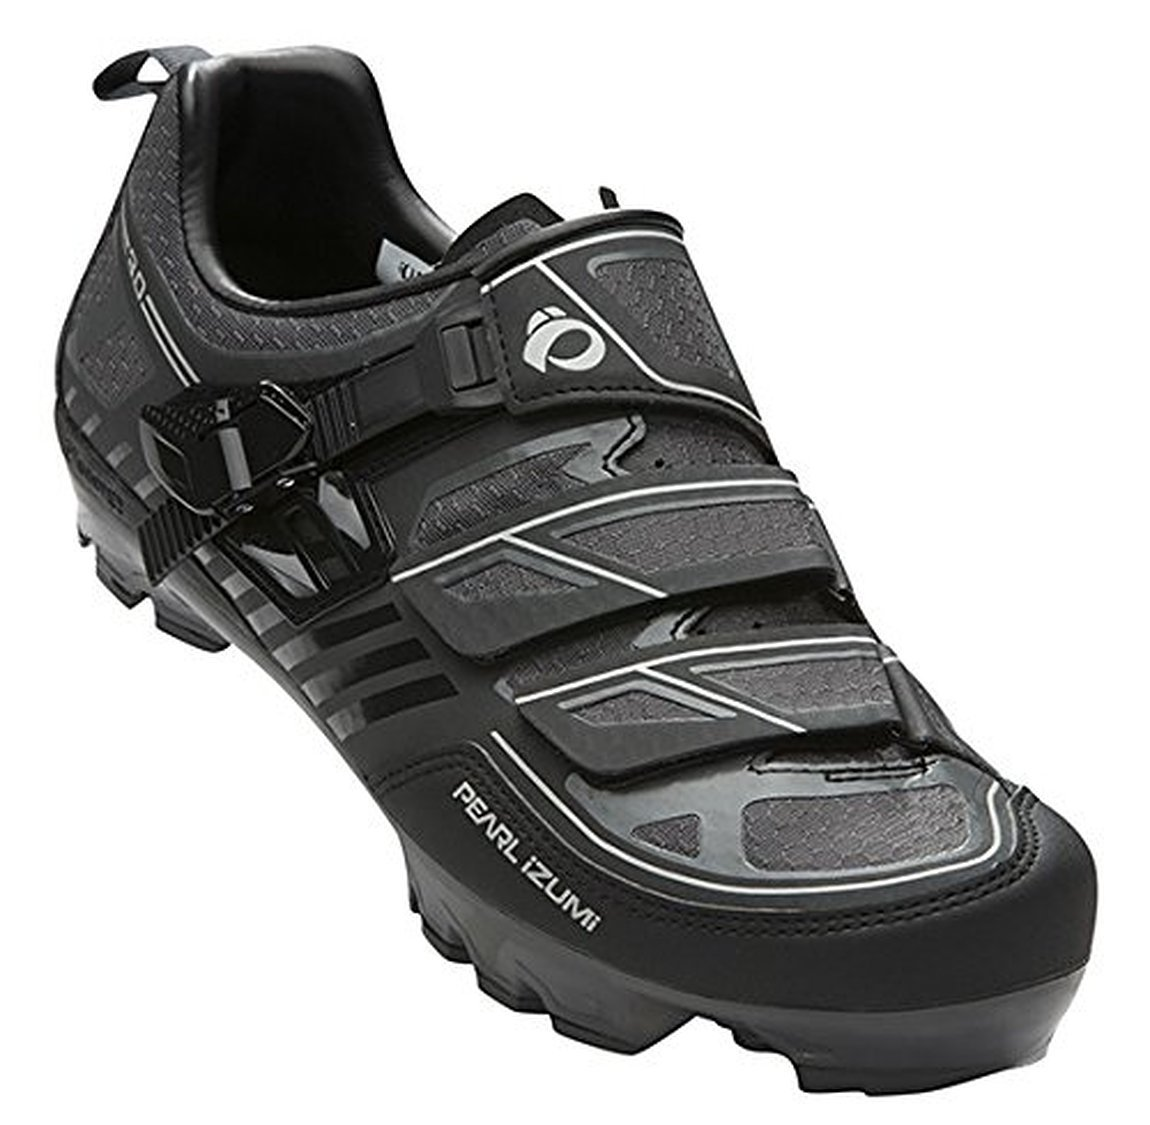 Pearl iZUMi Men's X-Project 3.0 Cycling Shoe B00YXUWYCK 46 EU/11.5 D US|Black/Shadow Grey